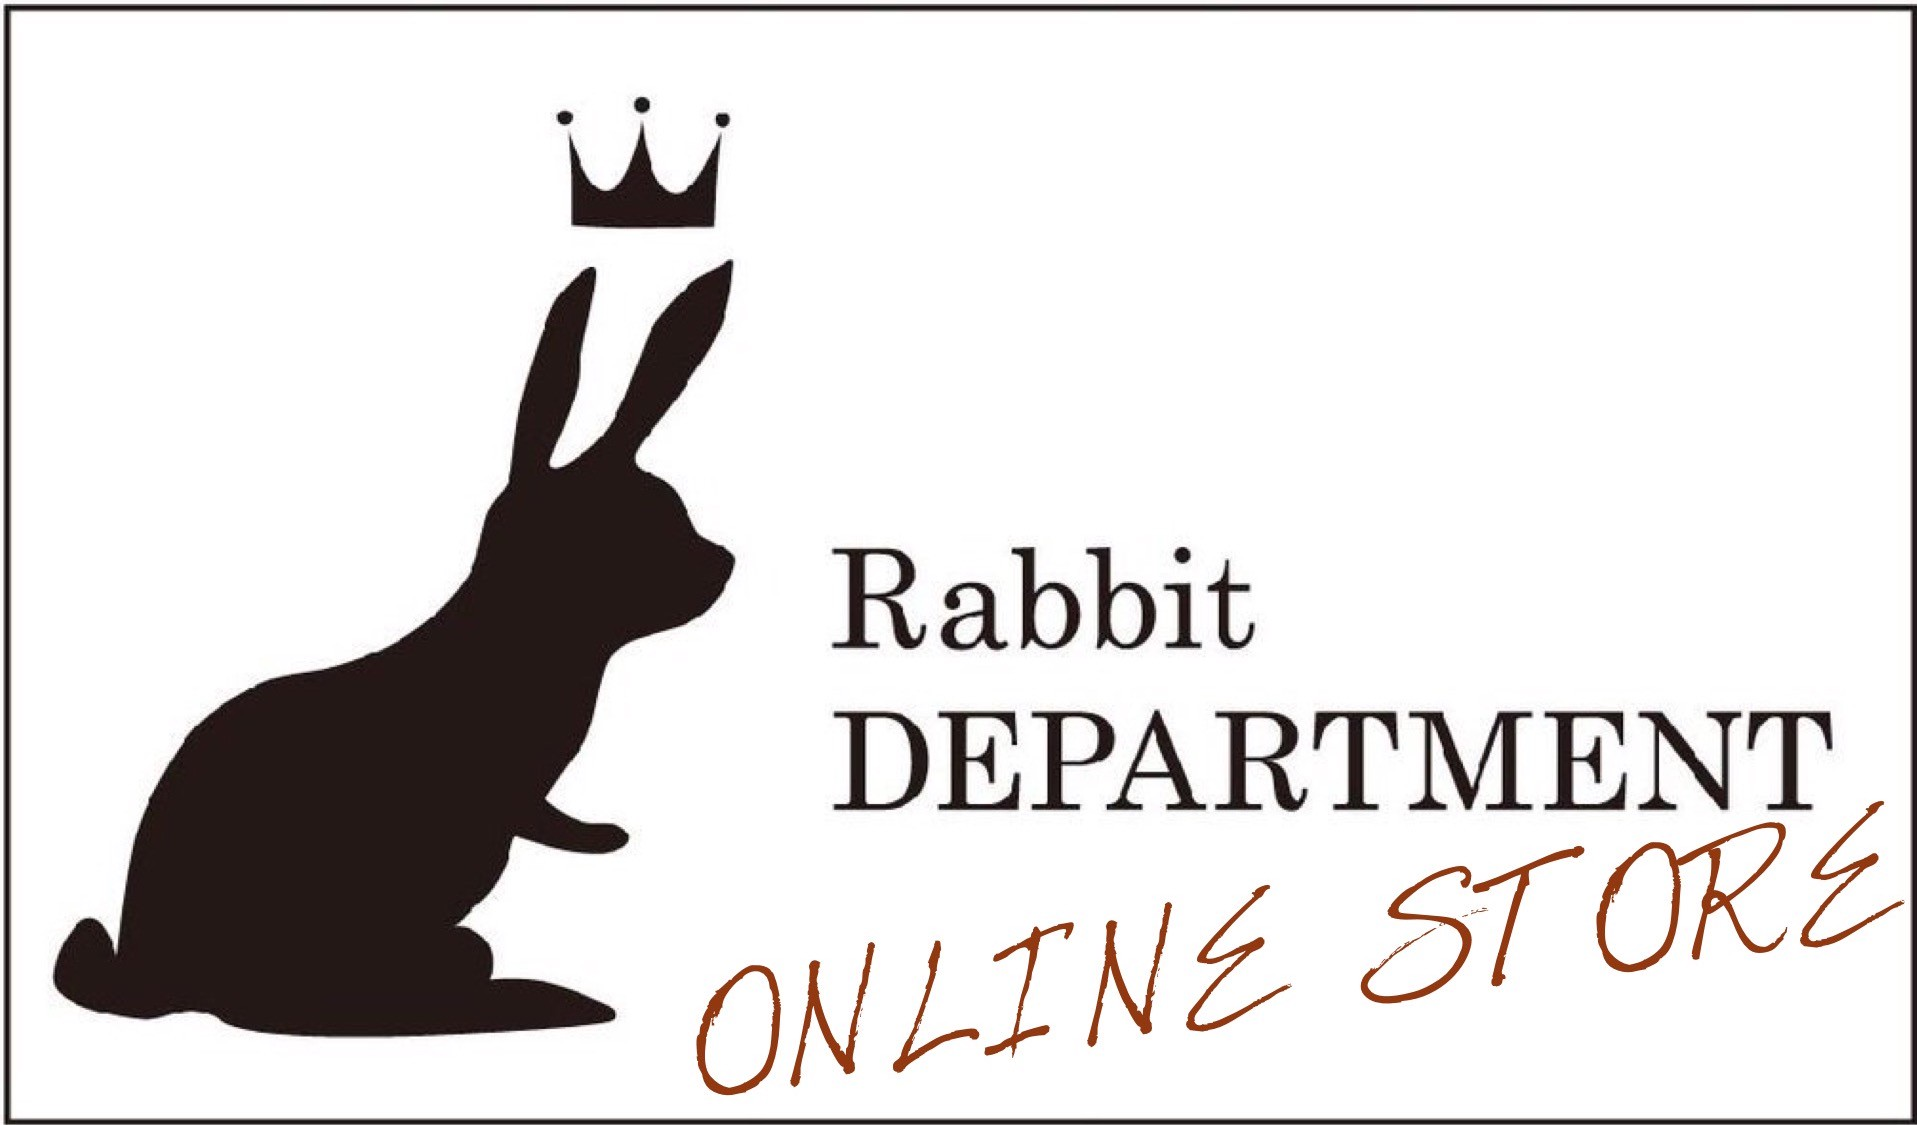 Rabbit DEPARTMENT ONLINE SHOP on the BASE